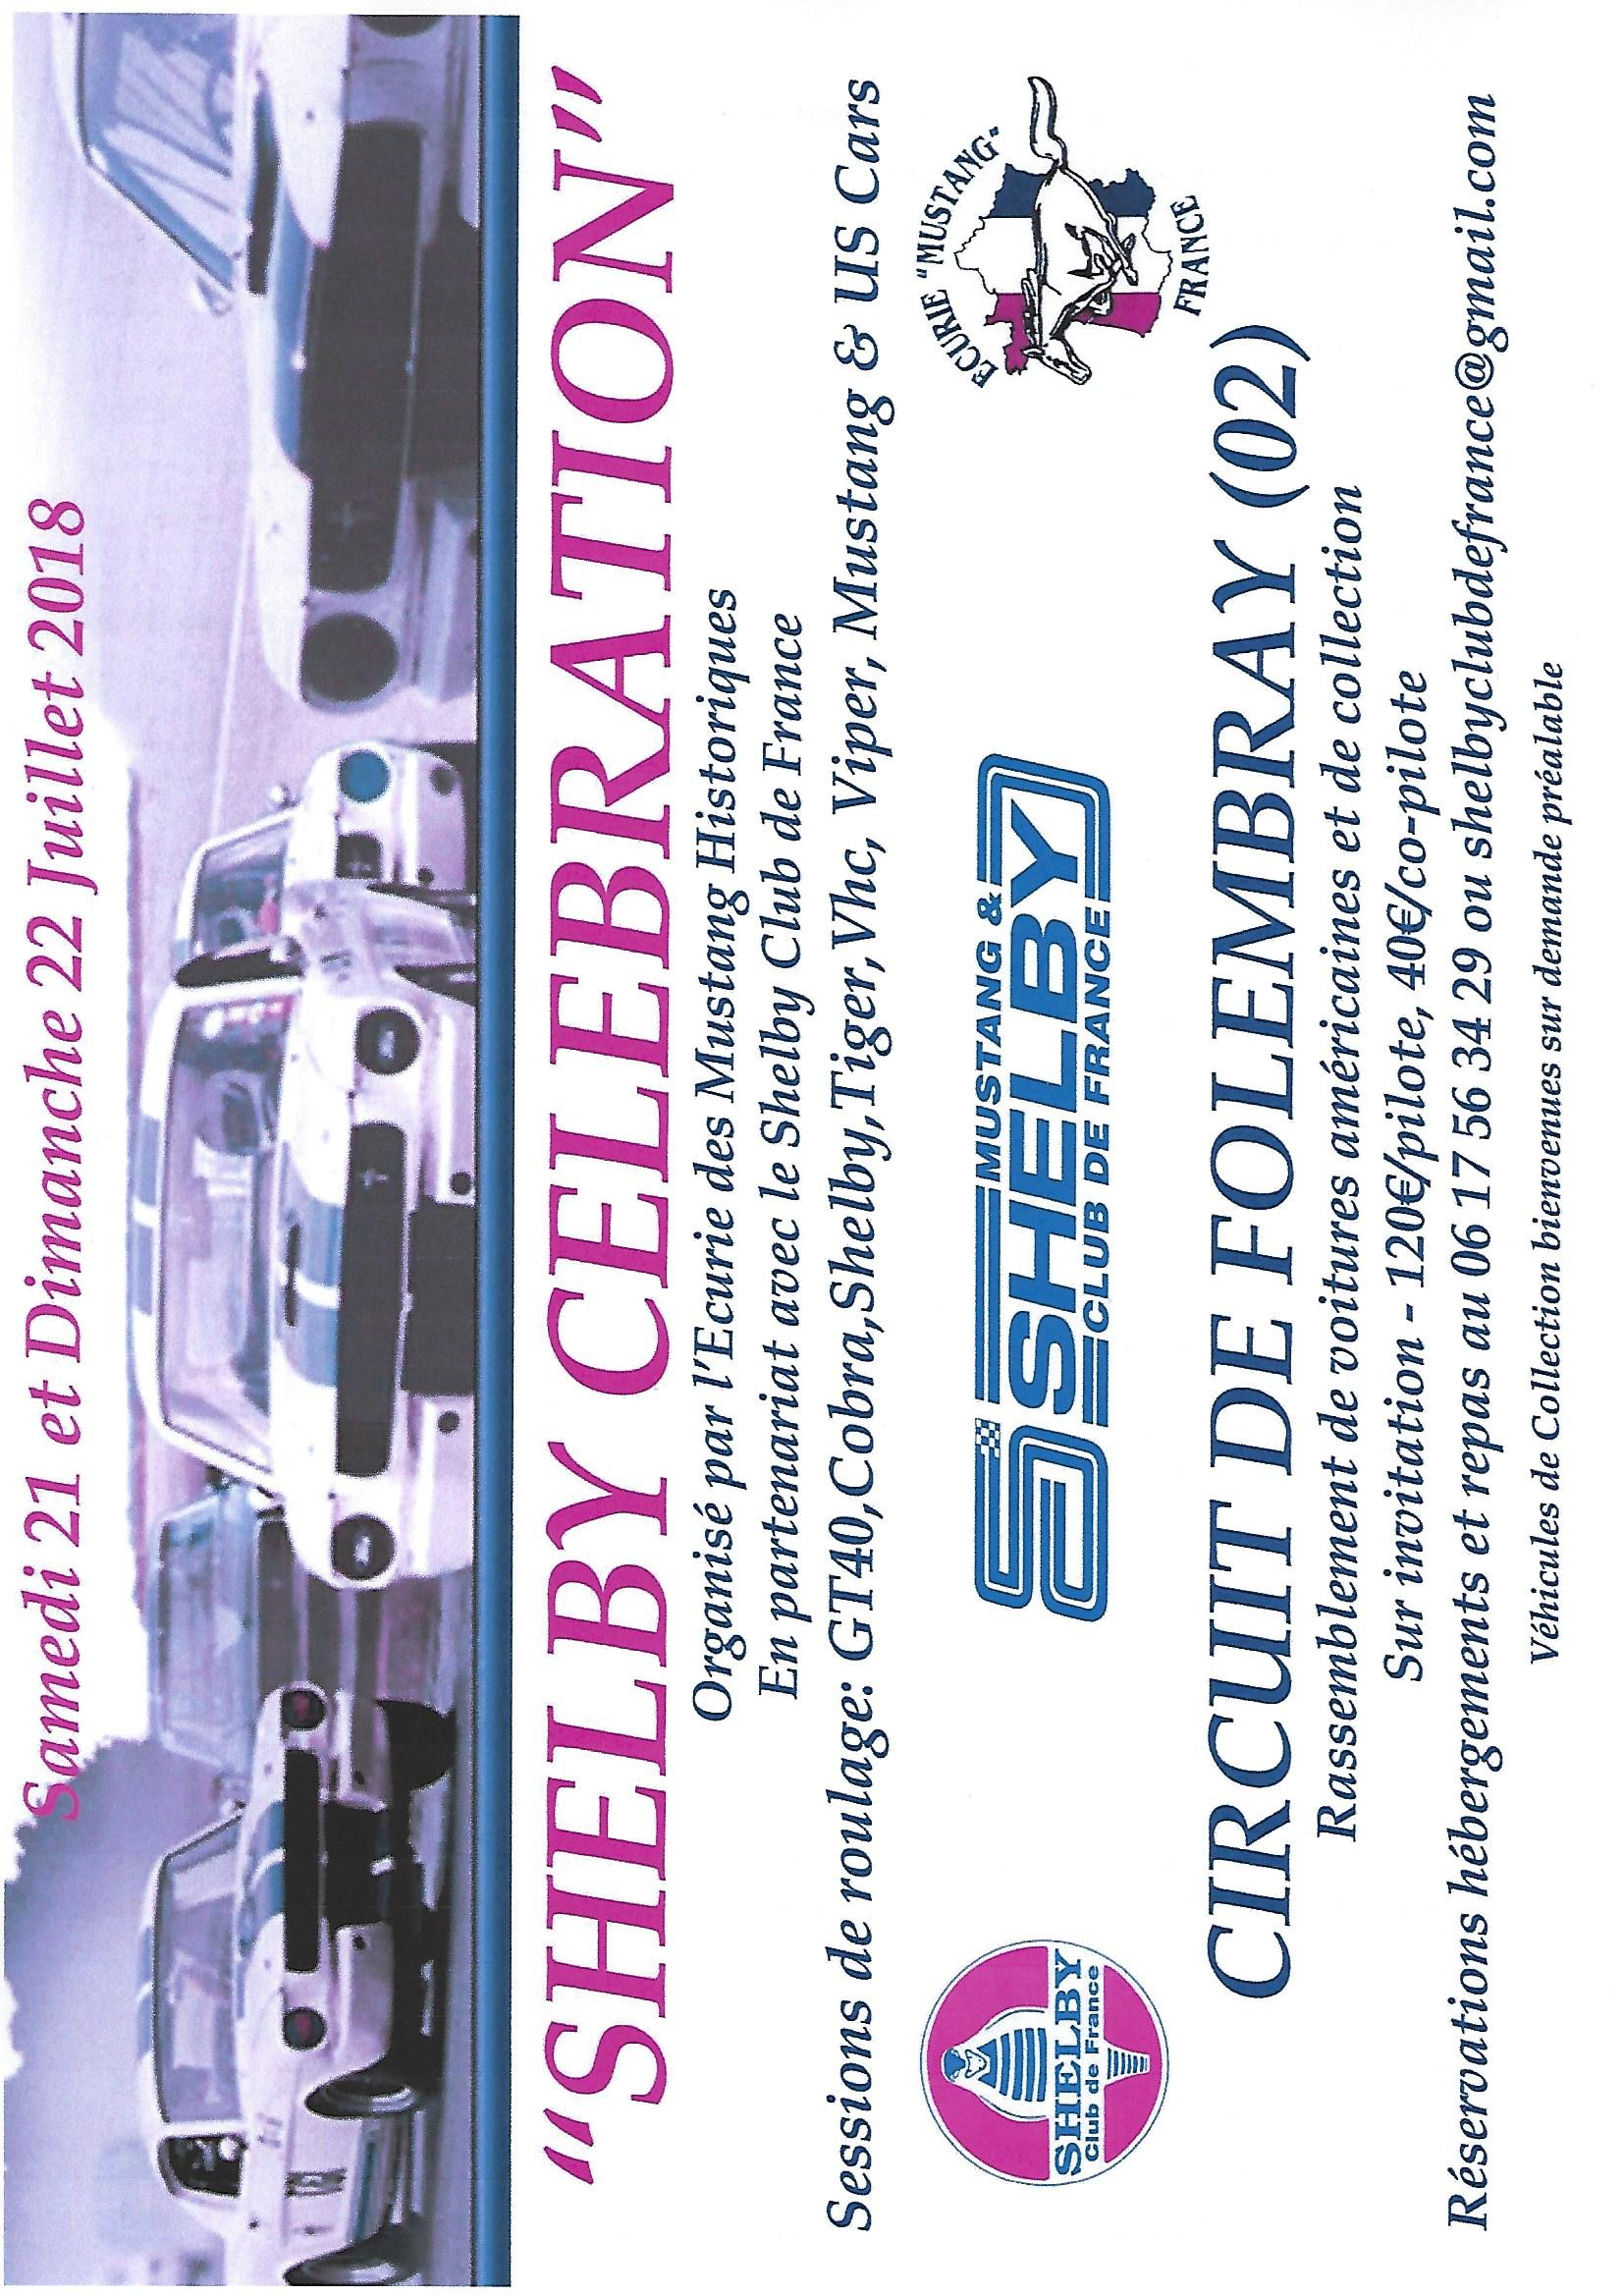 Scan 1 SHELBY CELEBRATION Days flyer 21-22 Juillet 2018 (1).jpg